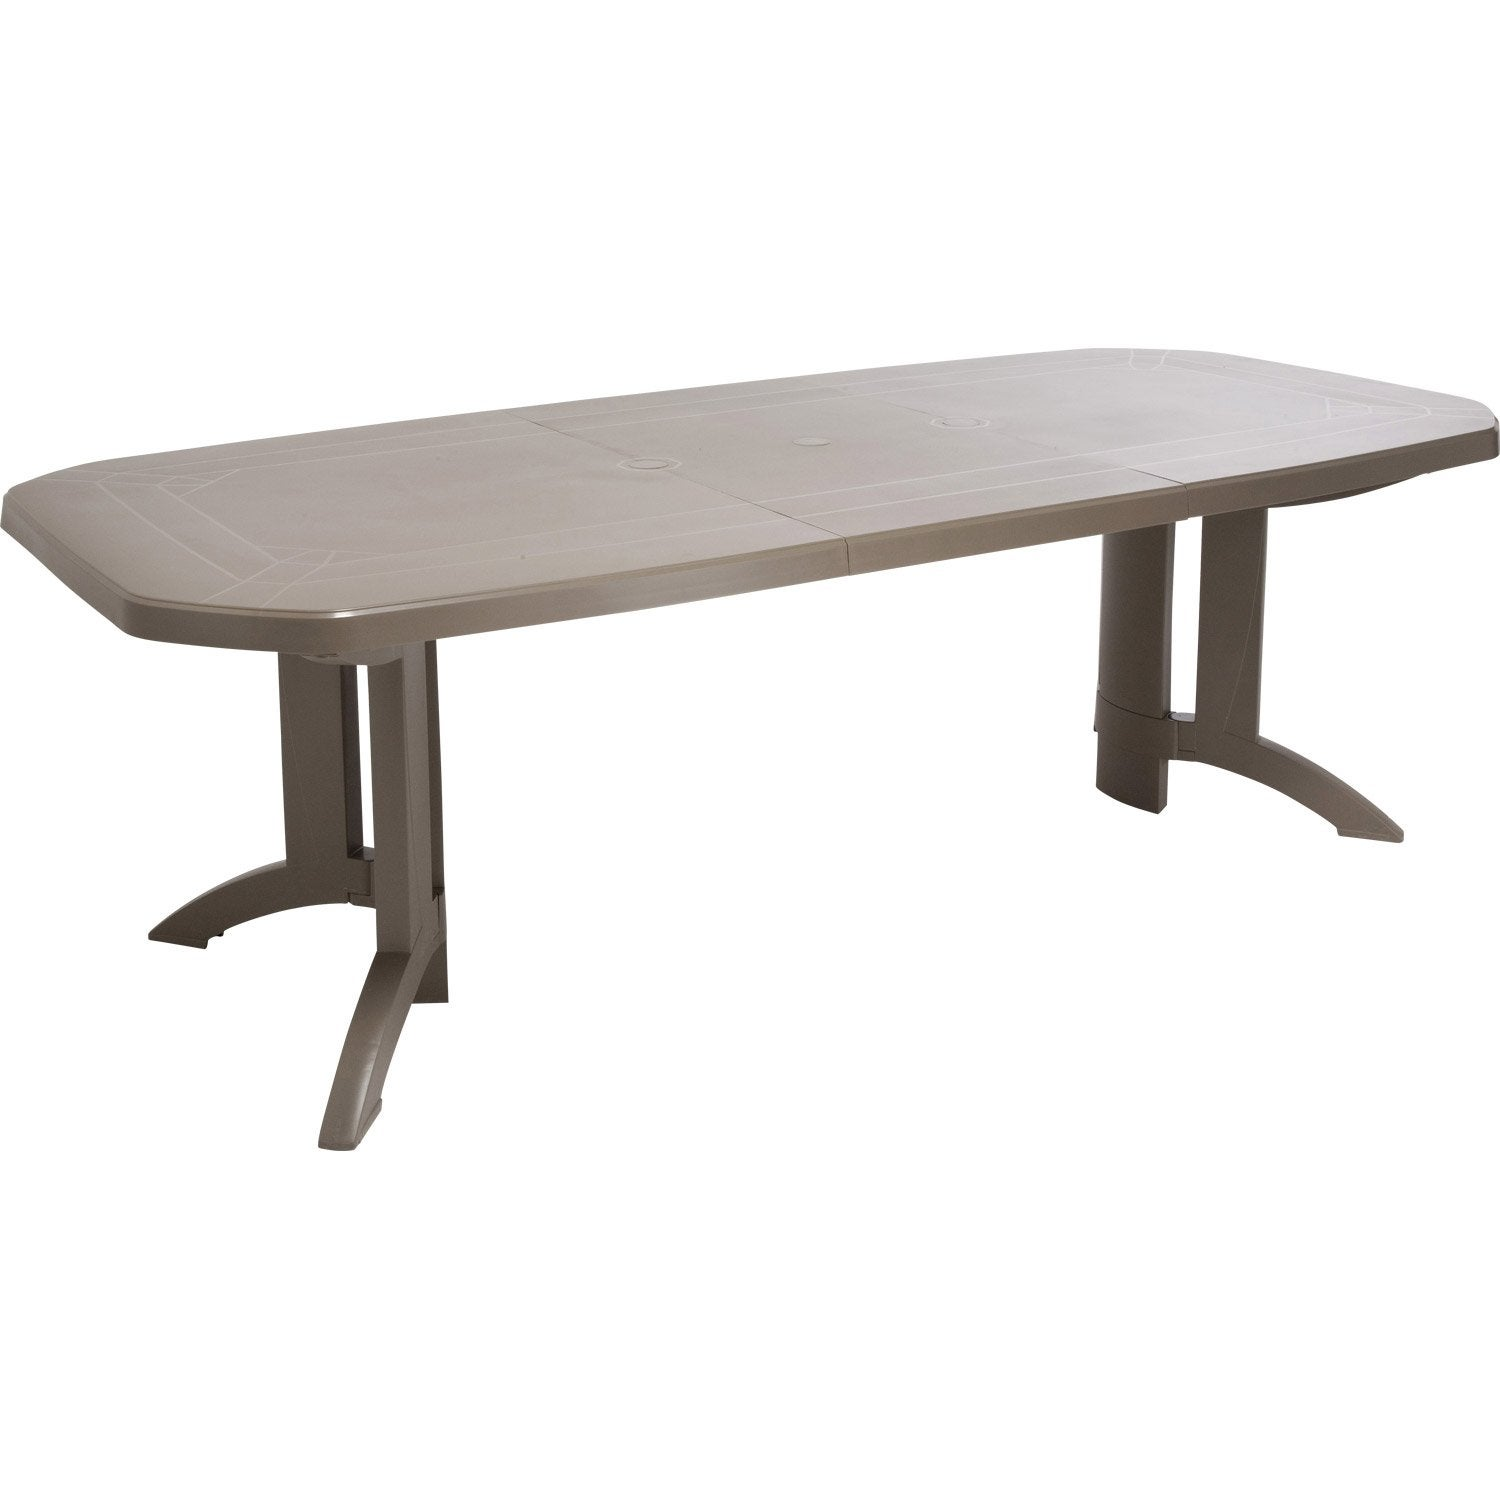 Table de jardin grosfillex v ga rectangulaire taupe 10 personnes leroy merlin - Leroy merlin table jardin ...